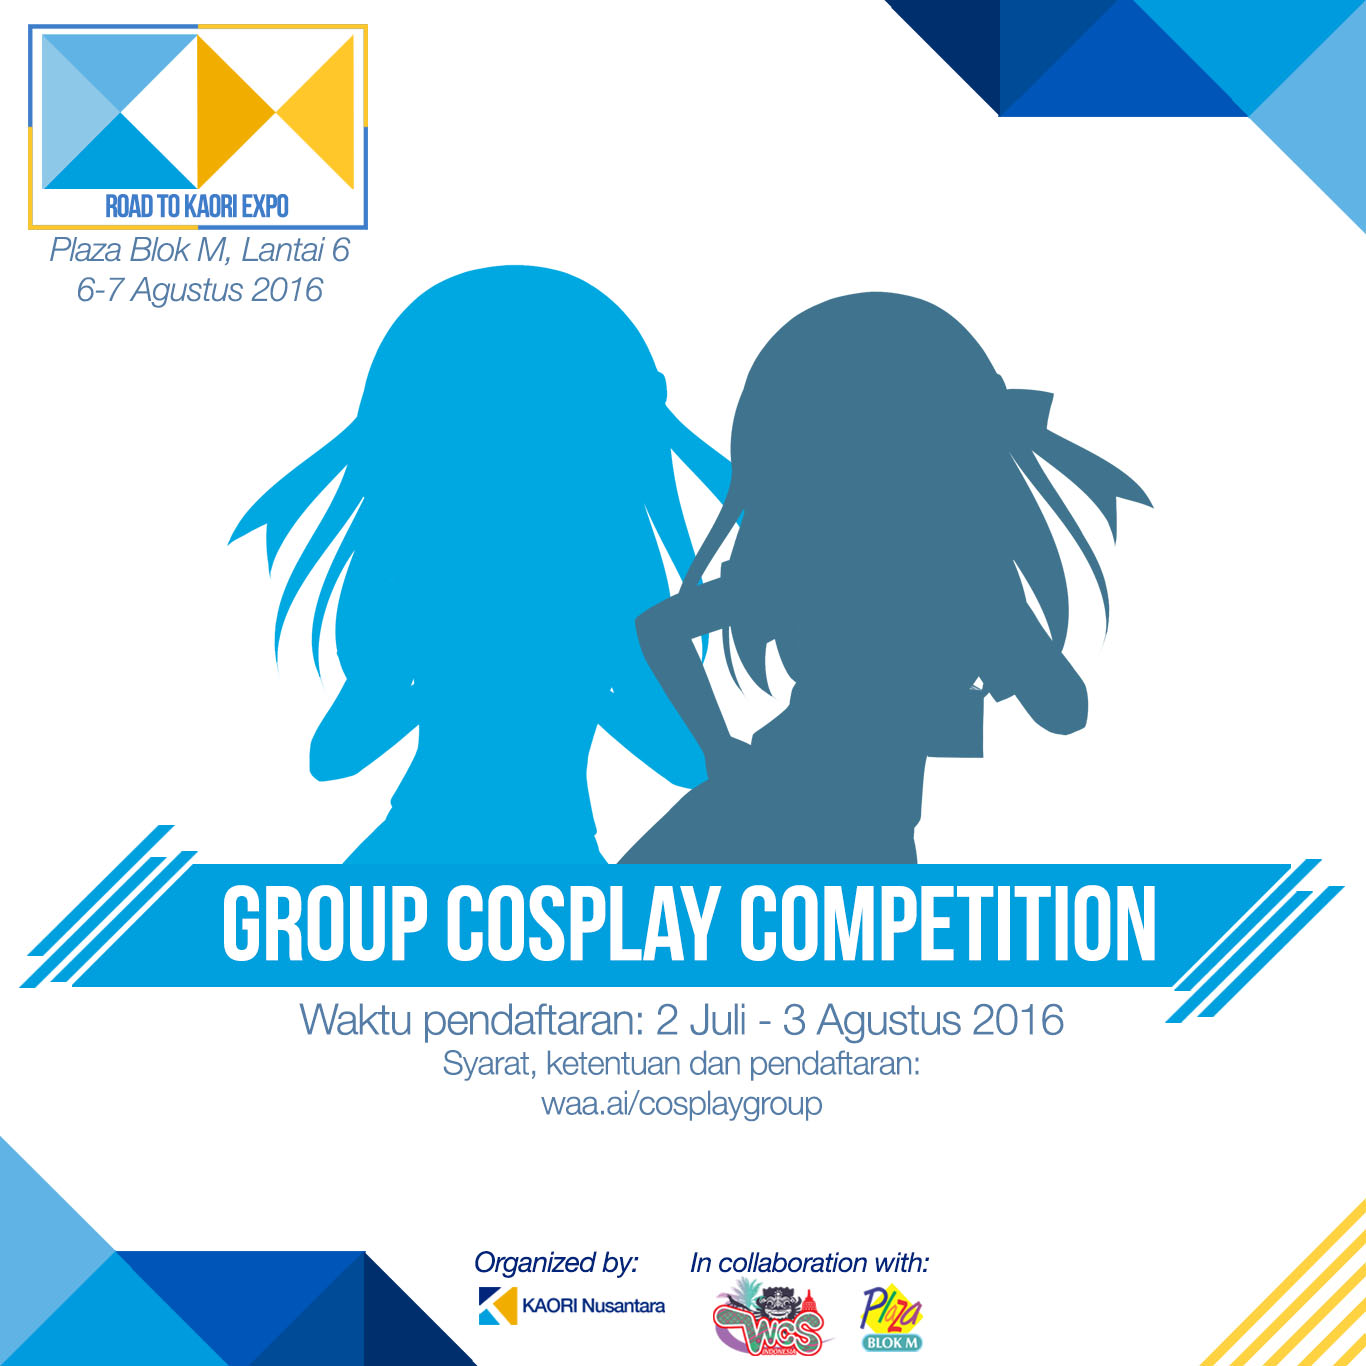 Cosplay Group Competition